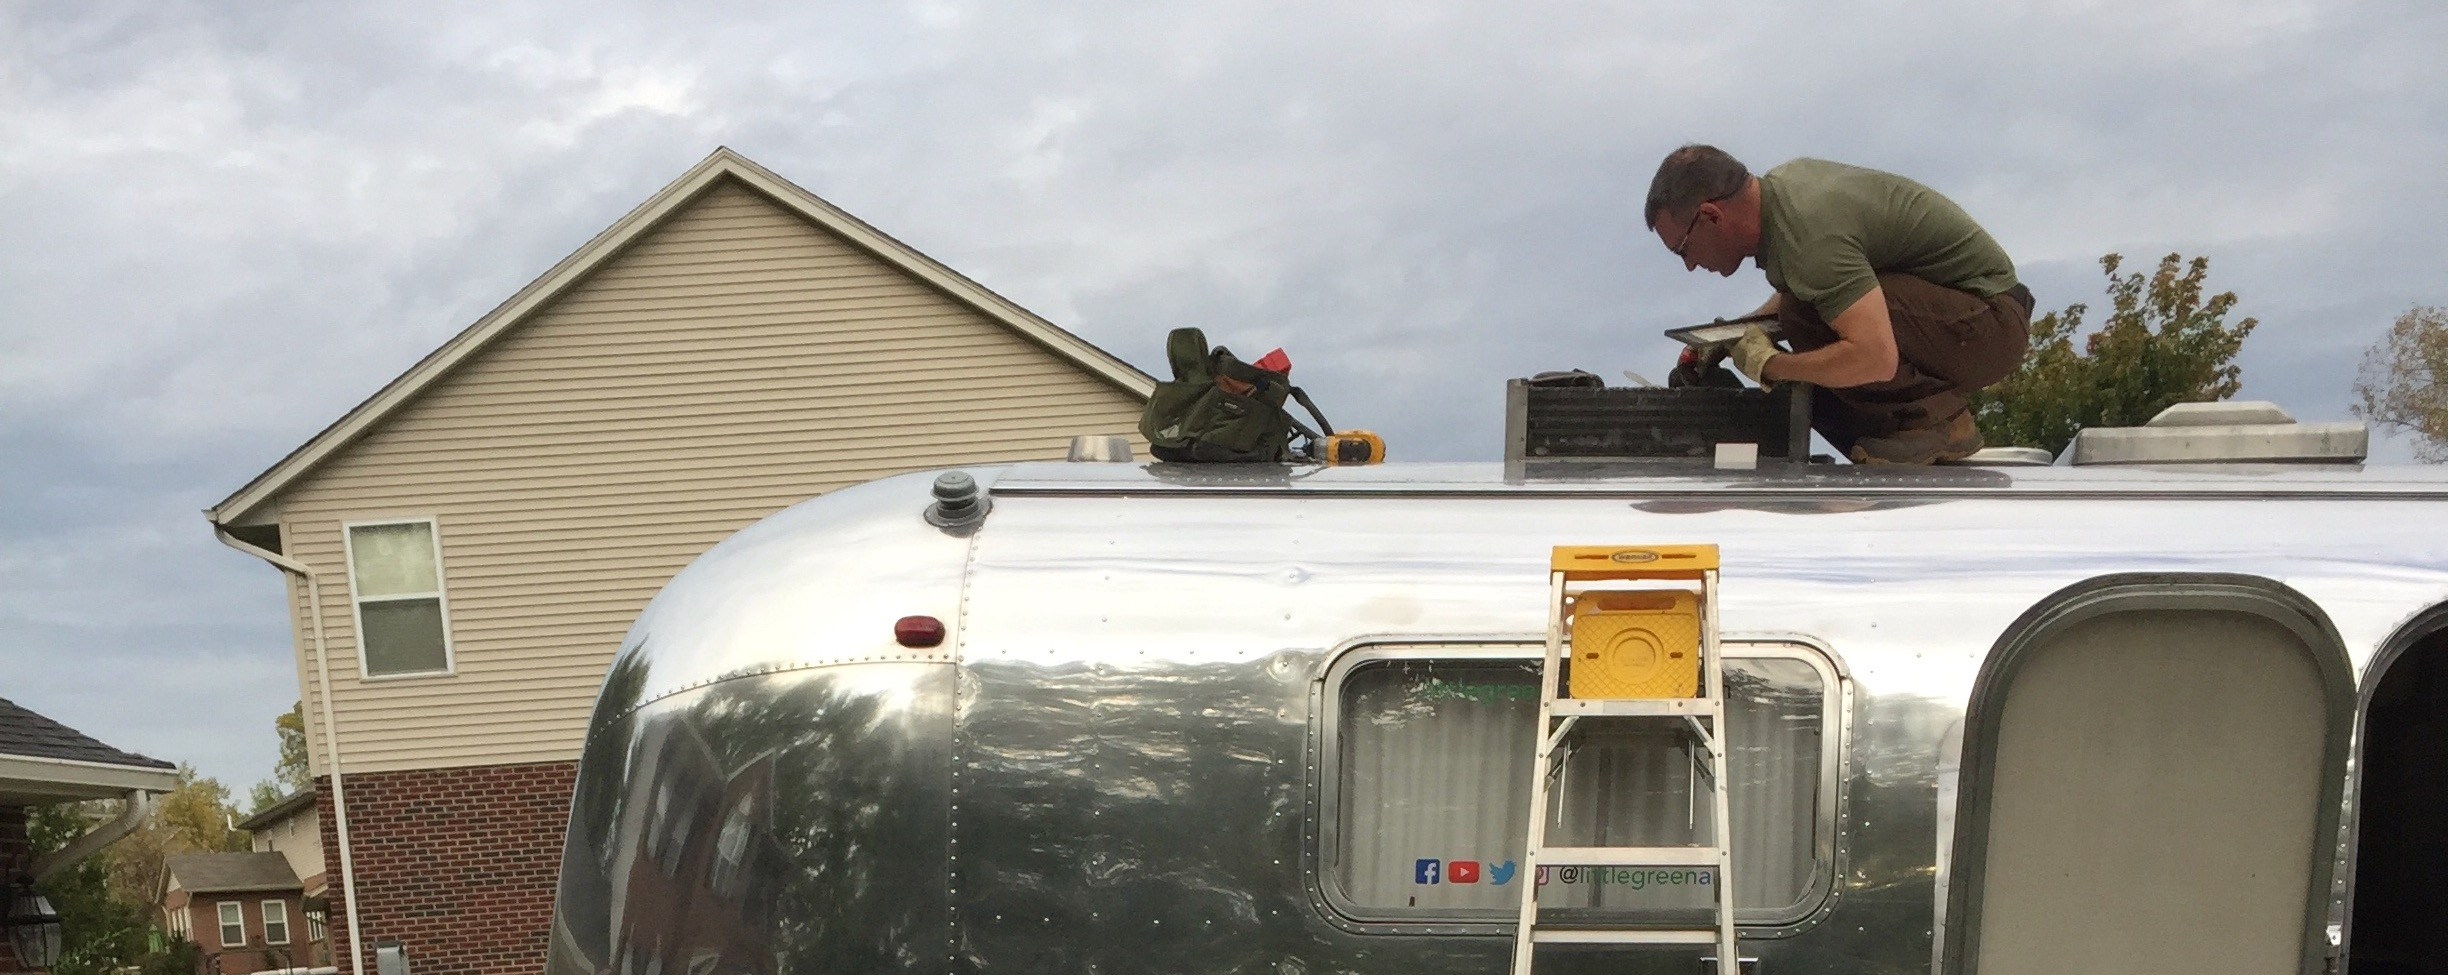 Repairing A Vintage Airstream C Part 4 Wiring Troubleshoot Camper Diagram Little Green